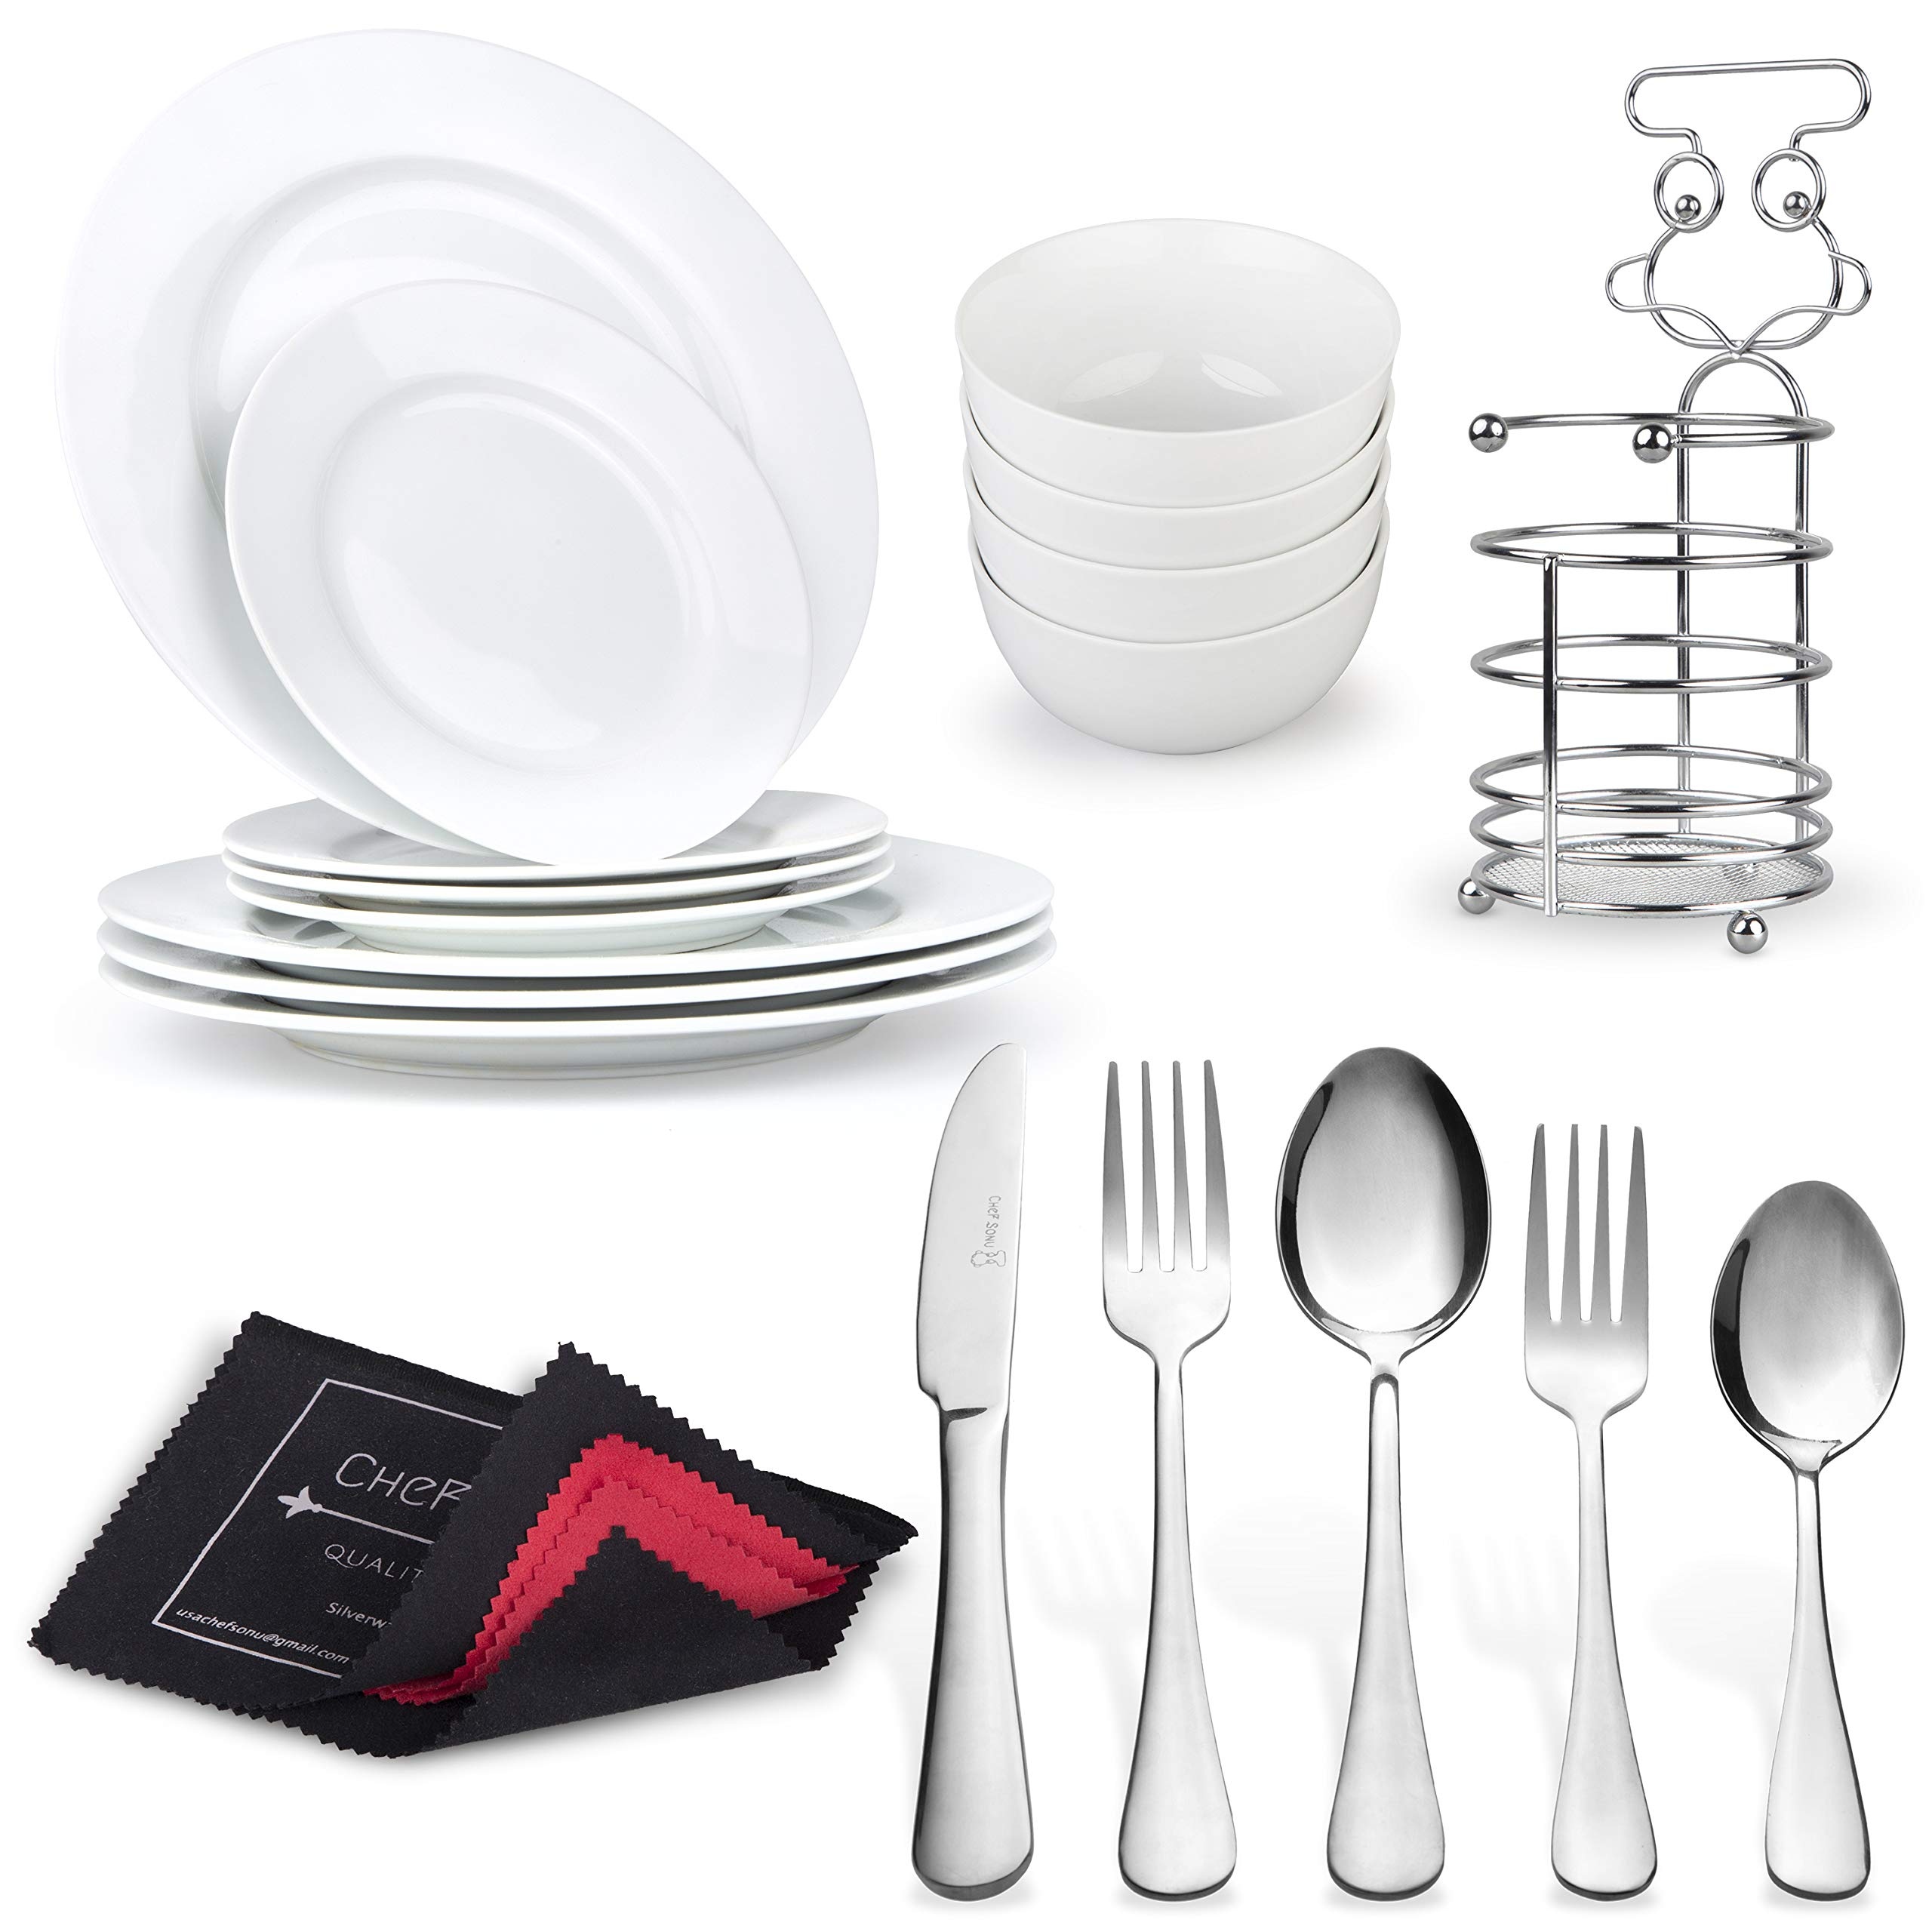 20PCS Silverware Set + 12PCS Dinnerware Set + Cutlery Holder + Flatware Polishing Cloth | Porcelain Plates Bowls | Stainless Steel Spoons Forks Knifes by CheF SONU - Quality Over Price